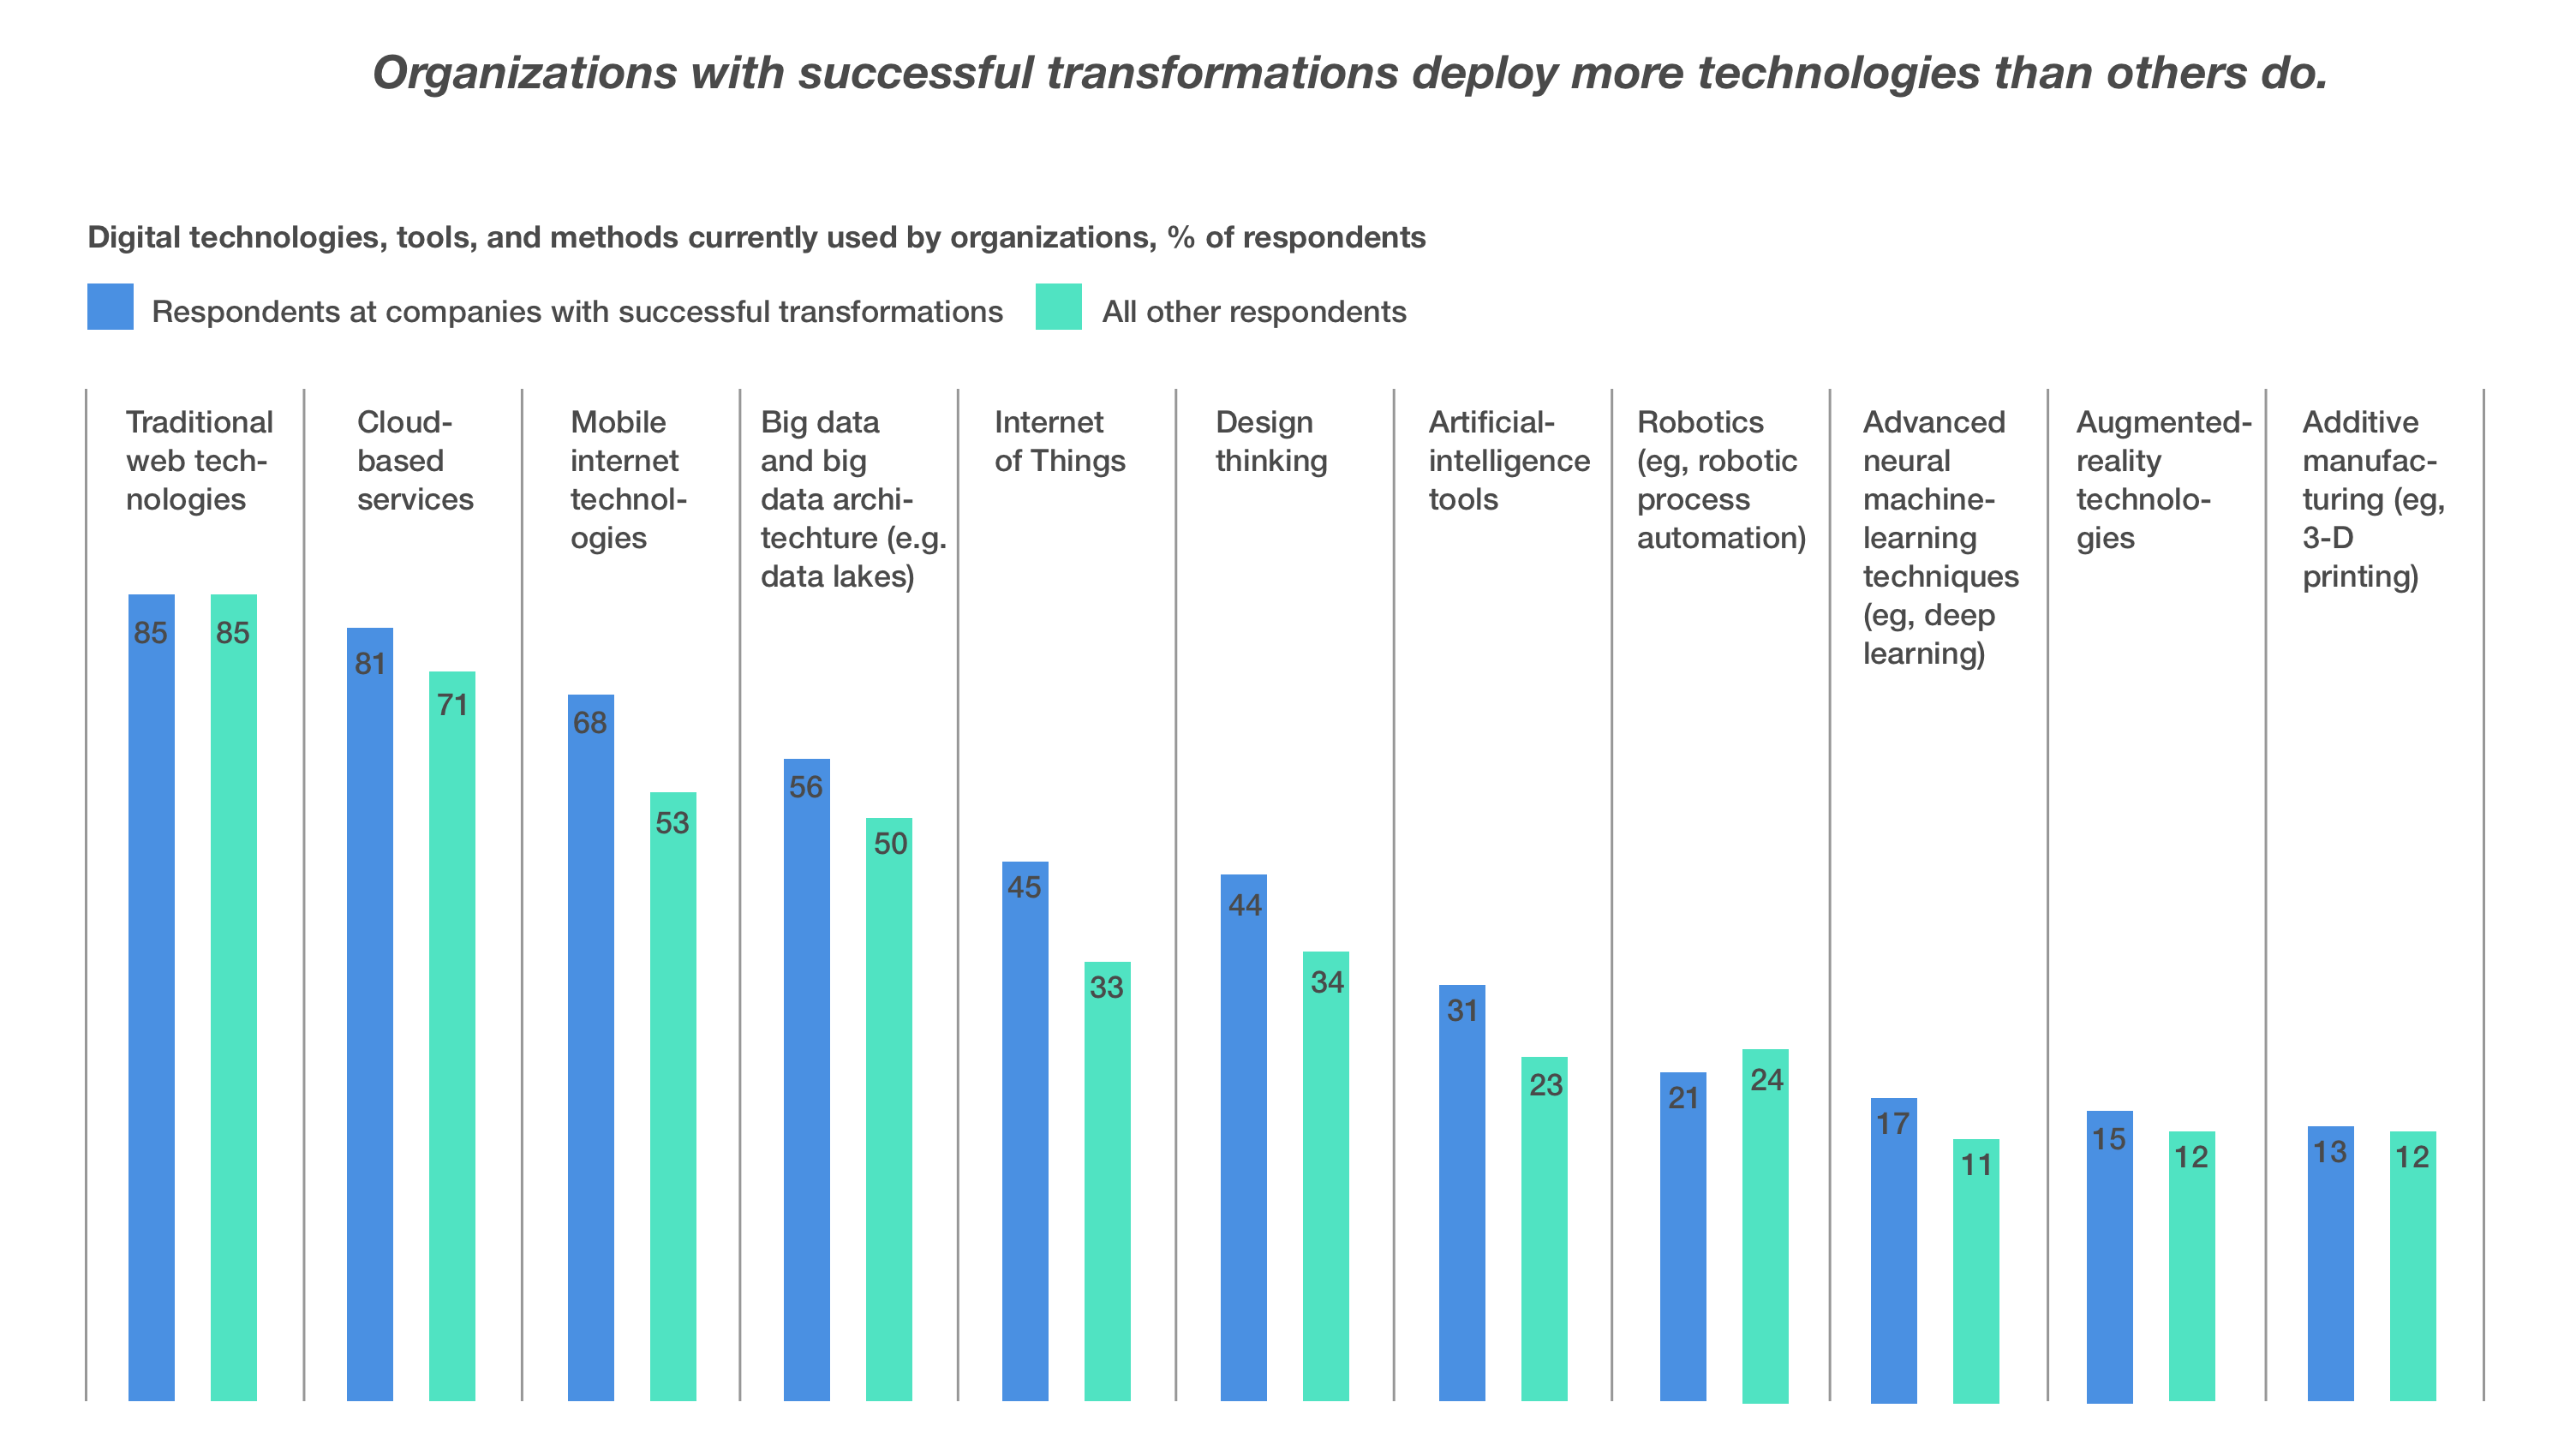 organizations with successful transformations deploy more technologies